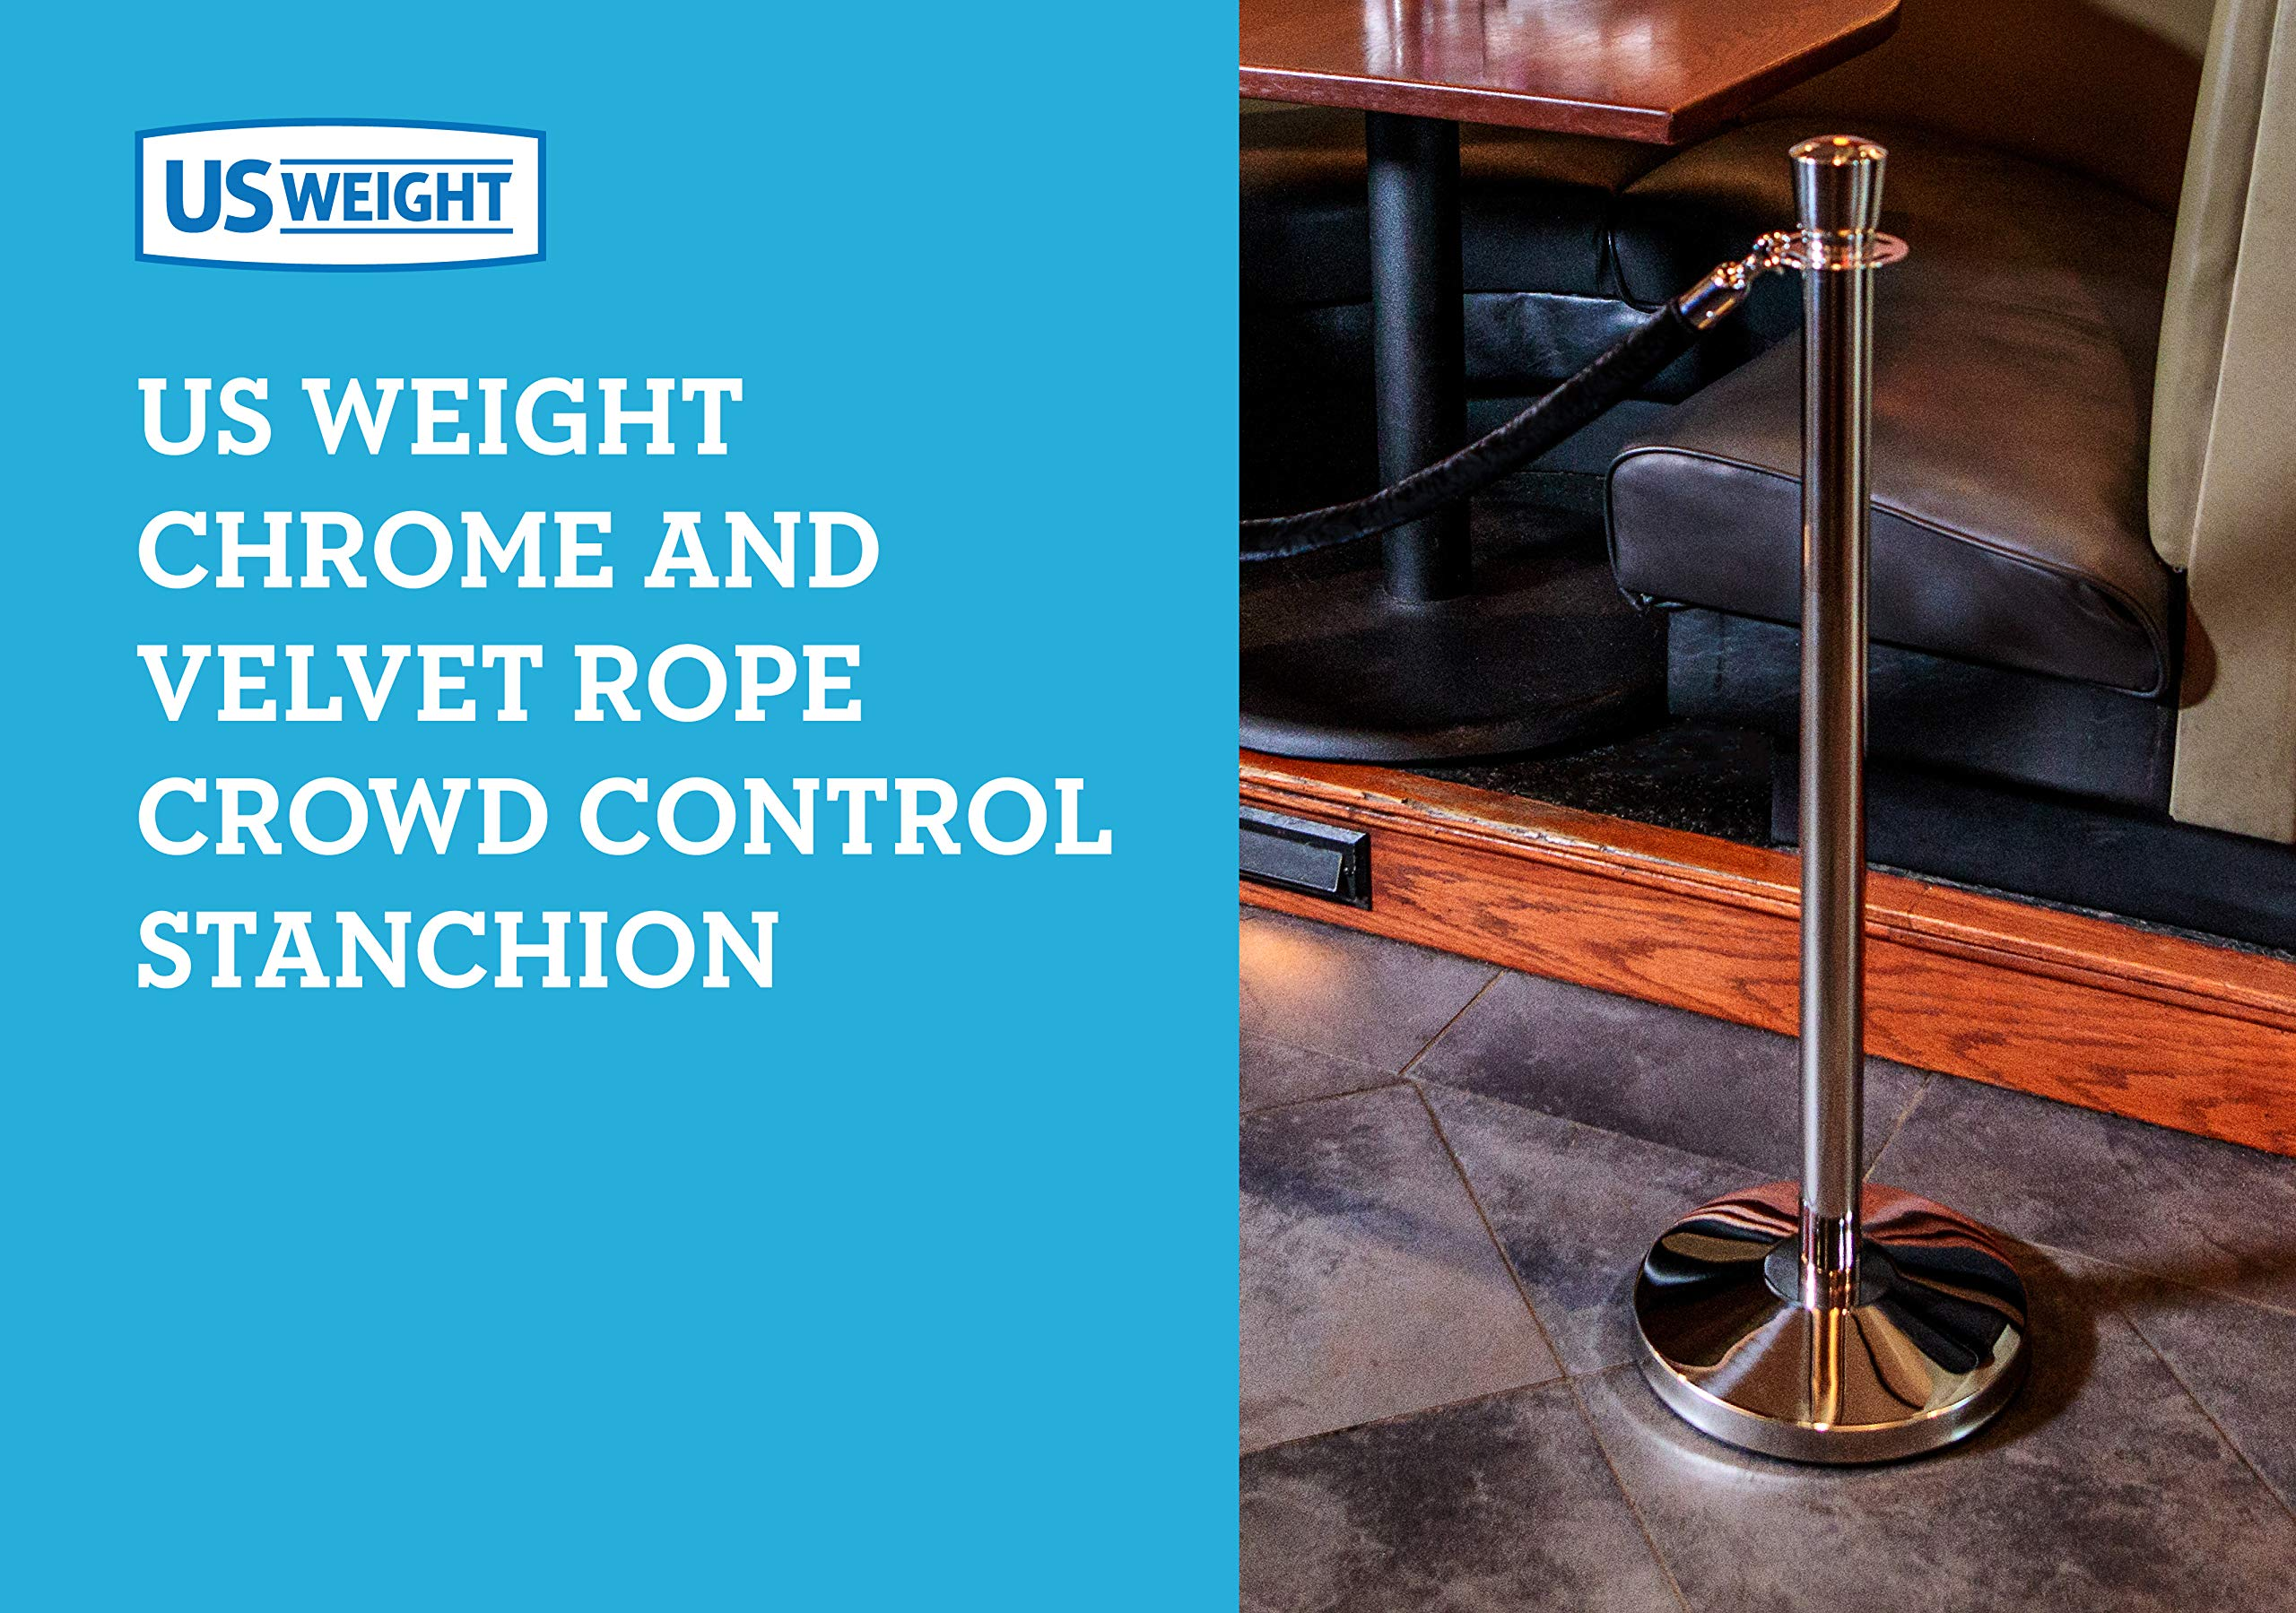 US Weight Premier Chrome Post and Black Velvet Rope Crowd Control Stanchions - 6 Pack, Includes 6 Chrome Stanchions & 5 Velvet Ropes by US Weight (Image #5)